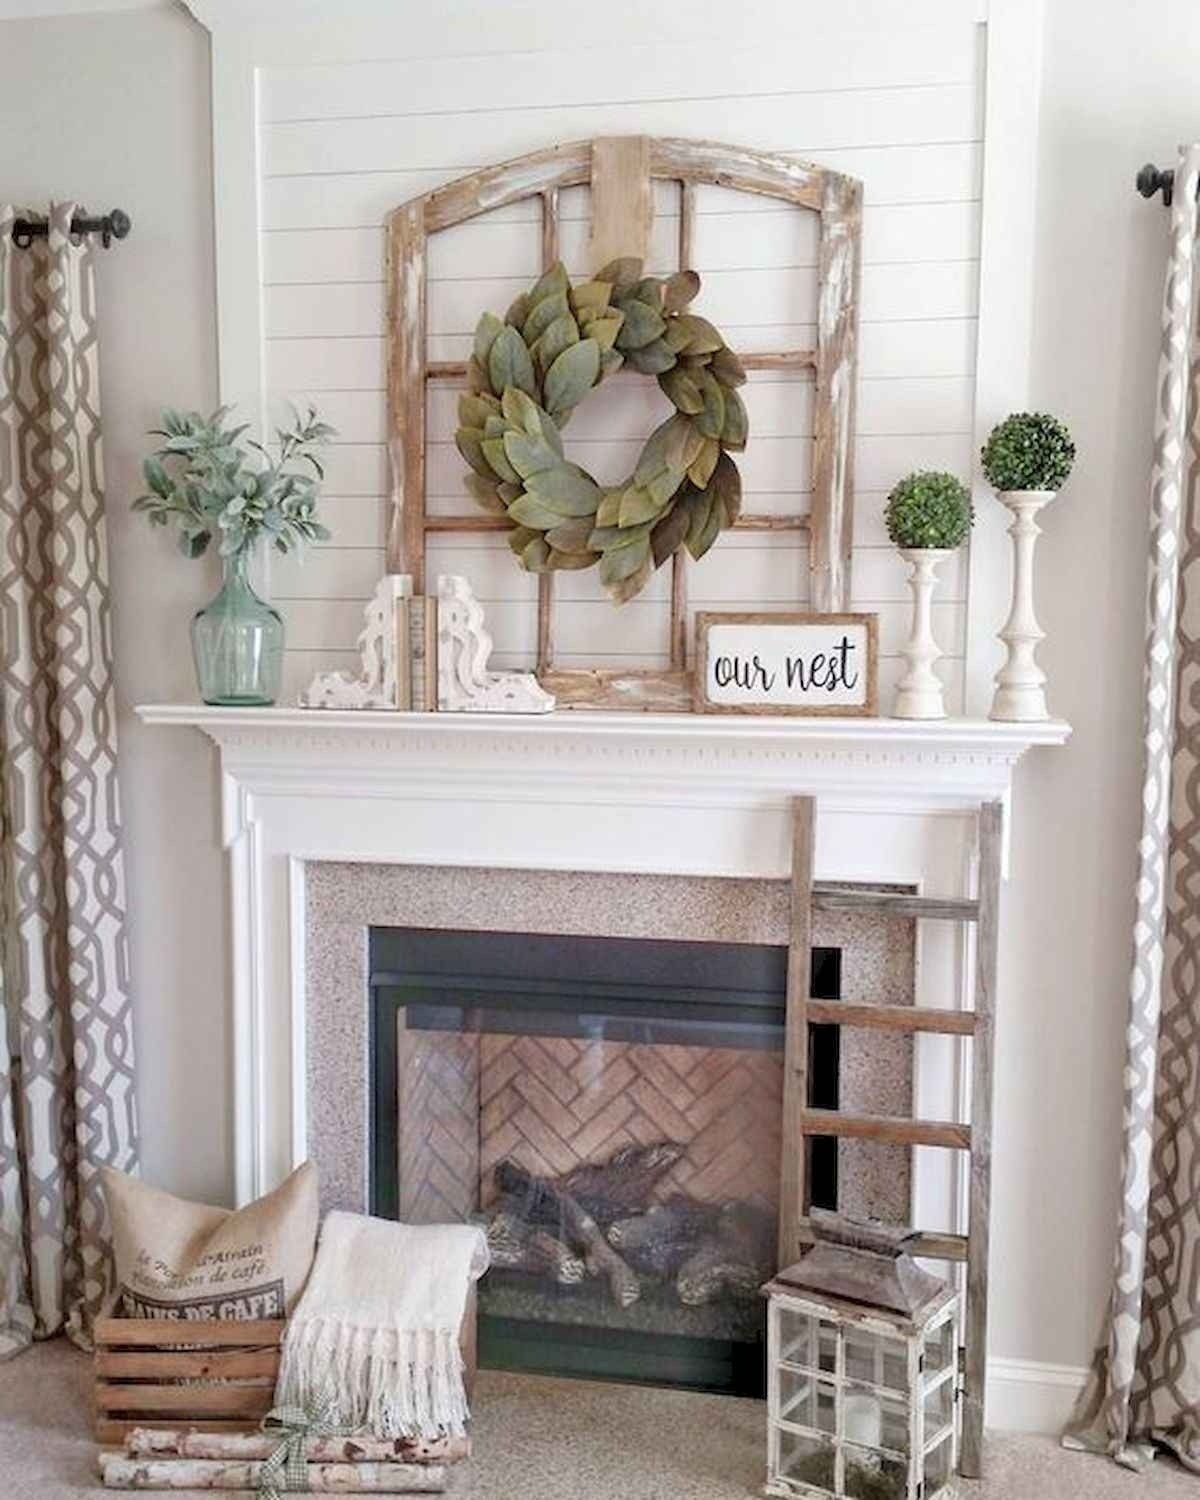 50 Beautiful Spring Mantel Decorating Ideas Wall Decor Living Room Rustic Rustic Living Room Farm House Living Room